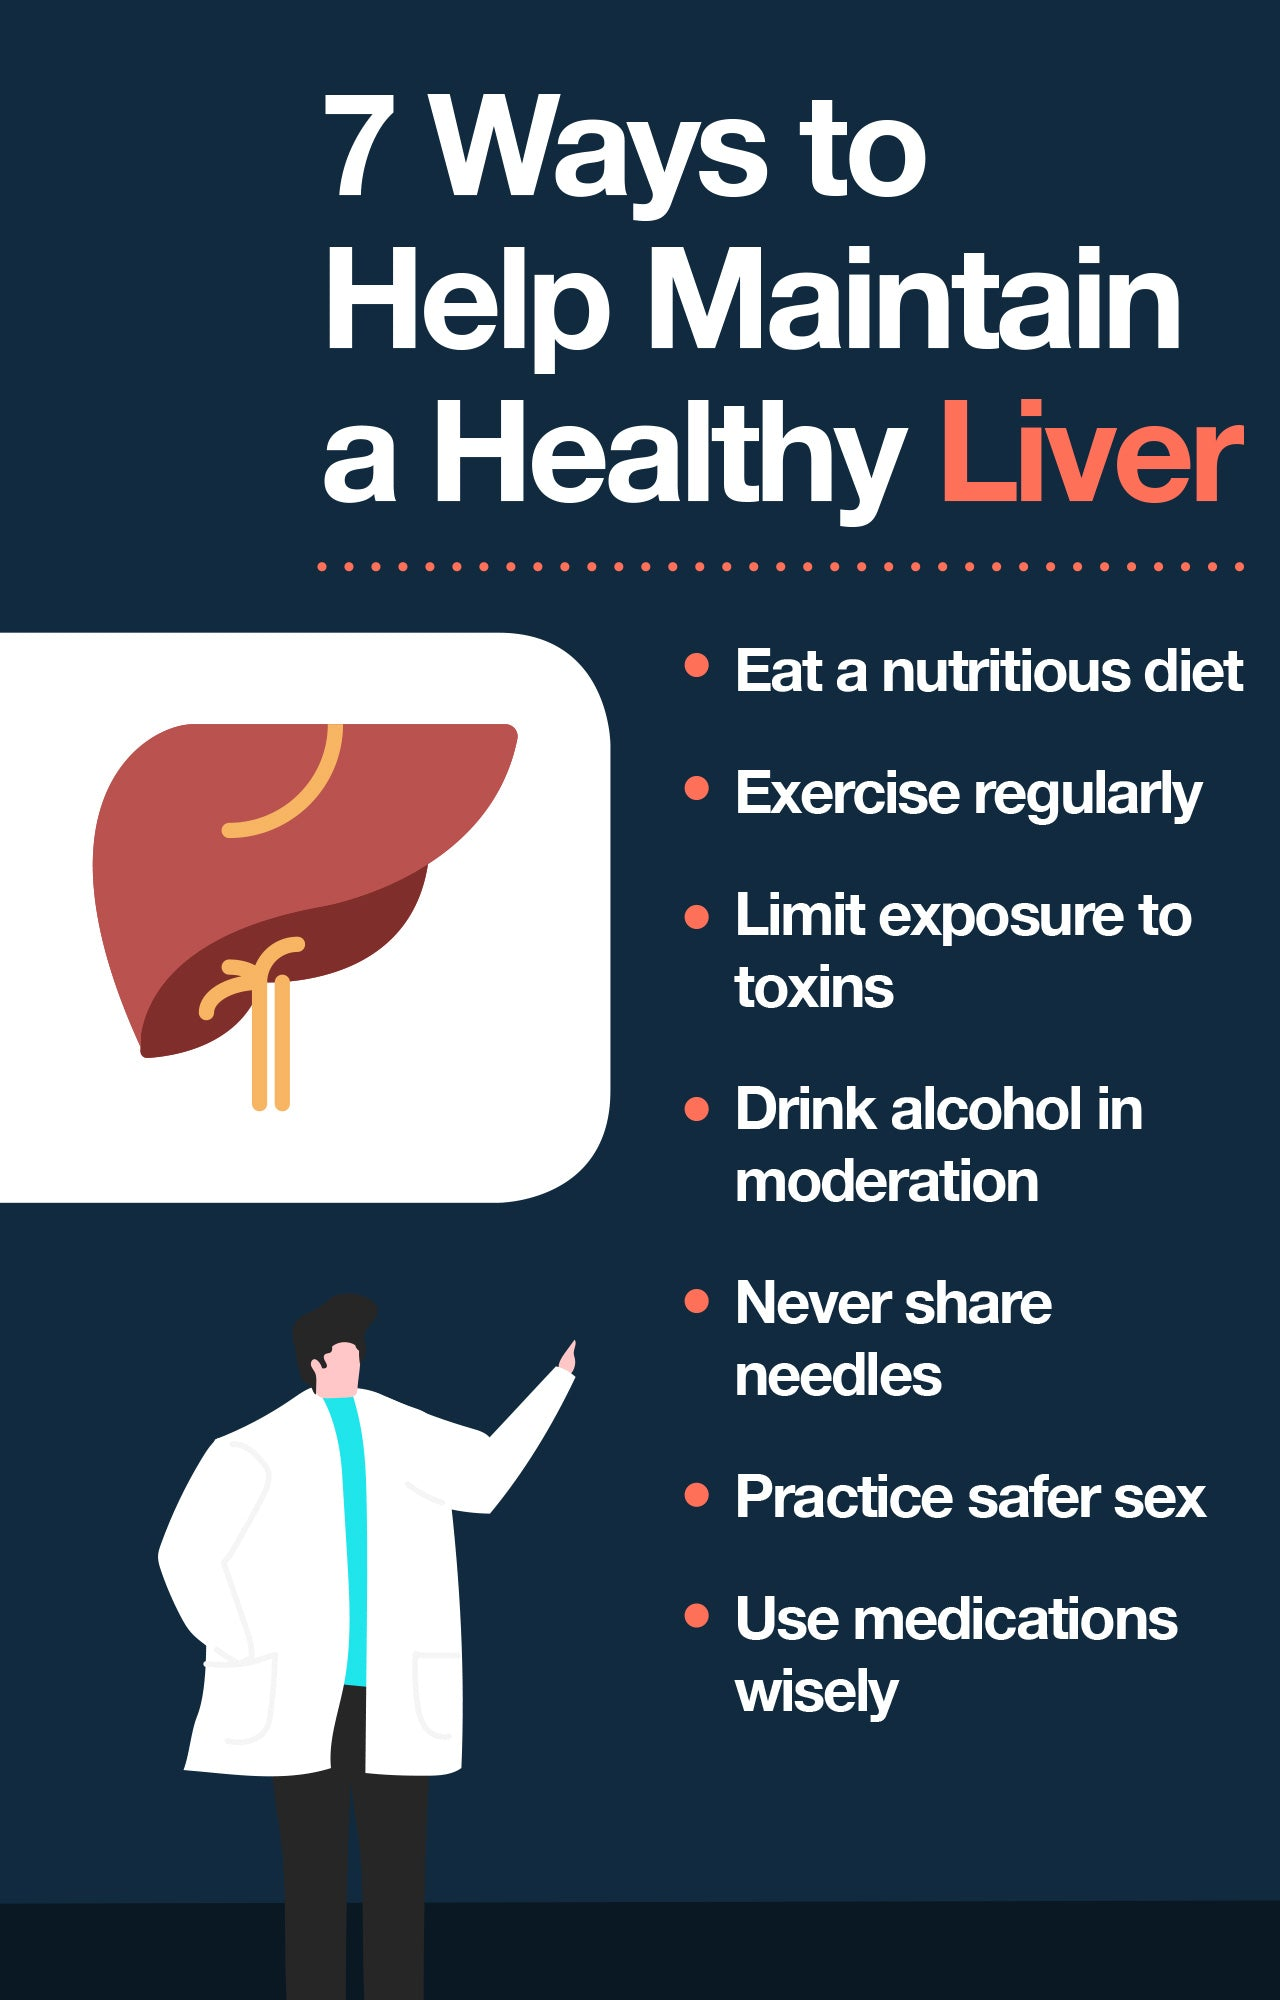 How to keep the liver healthy